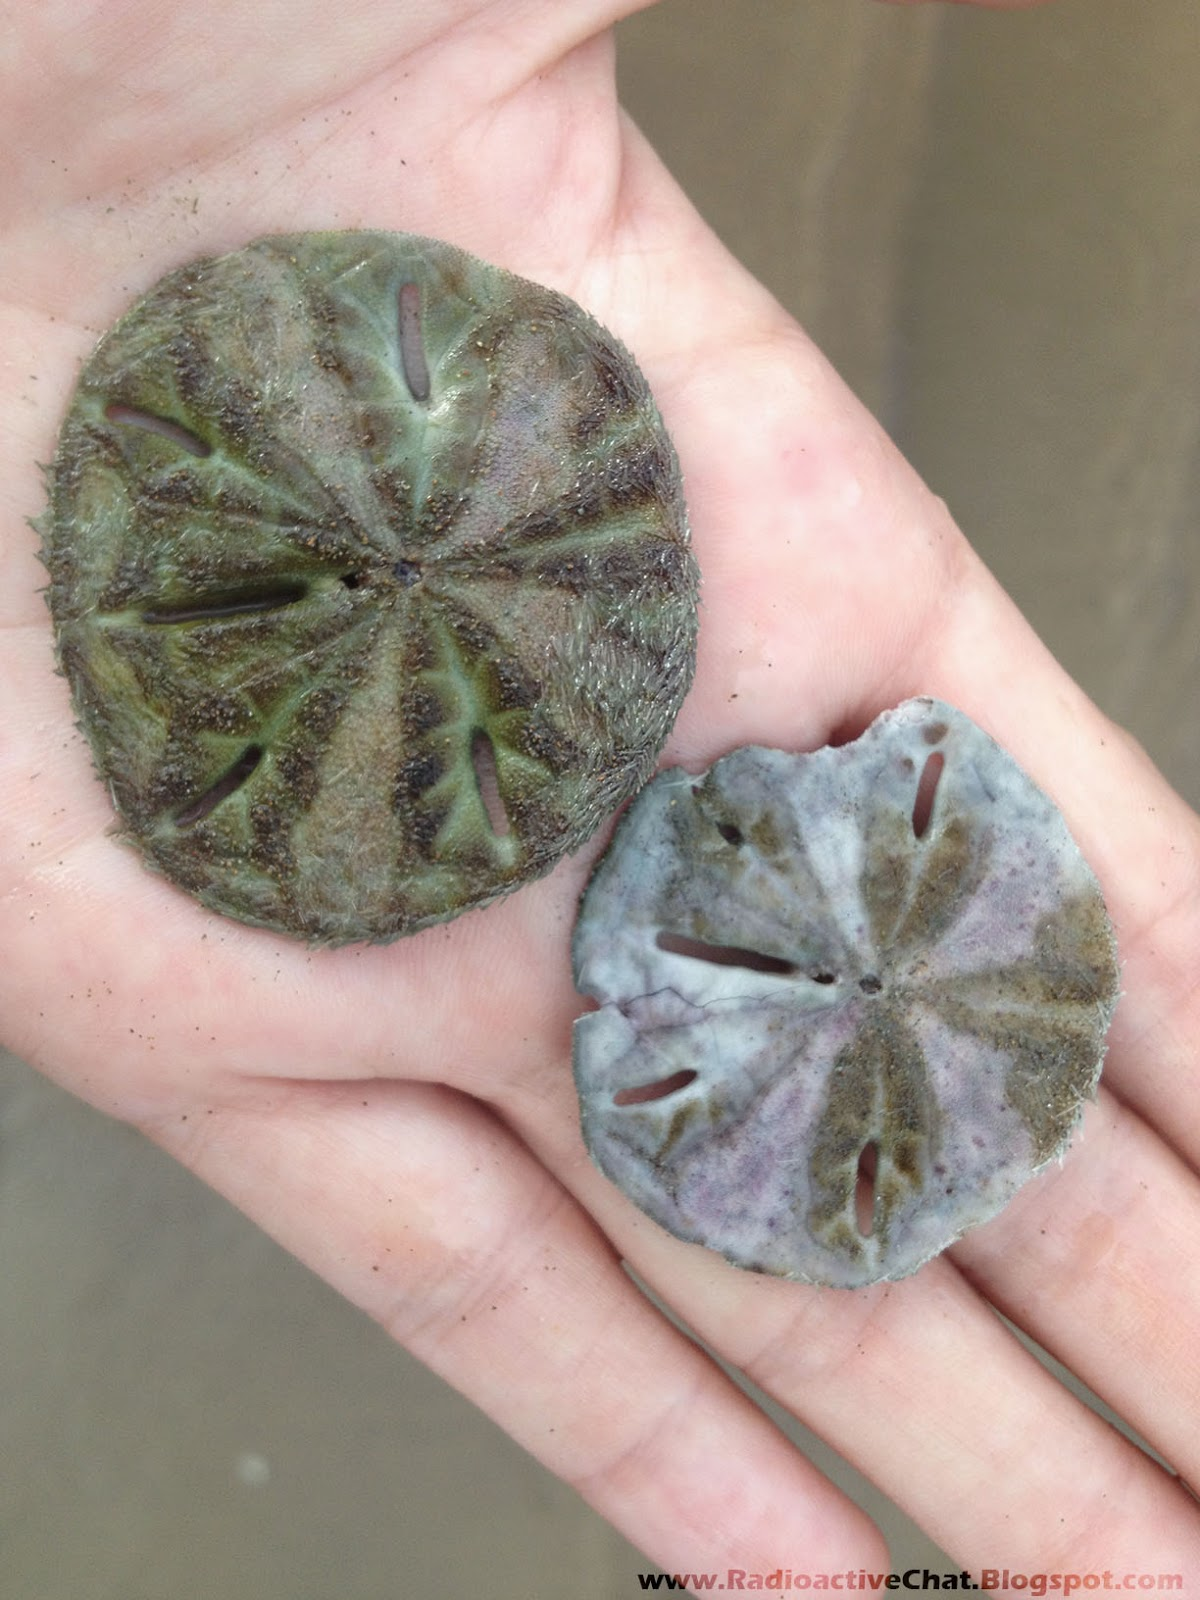 Severe Genetic Mutations Sand Dollars Costa Rica - Photo 2-1